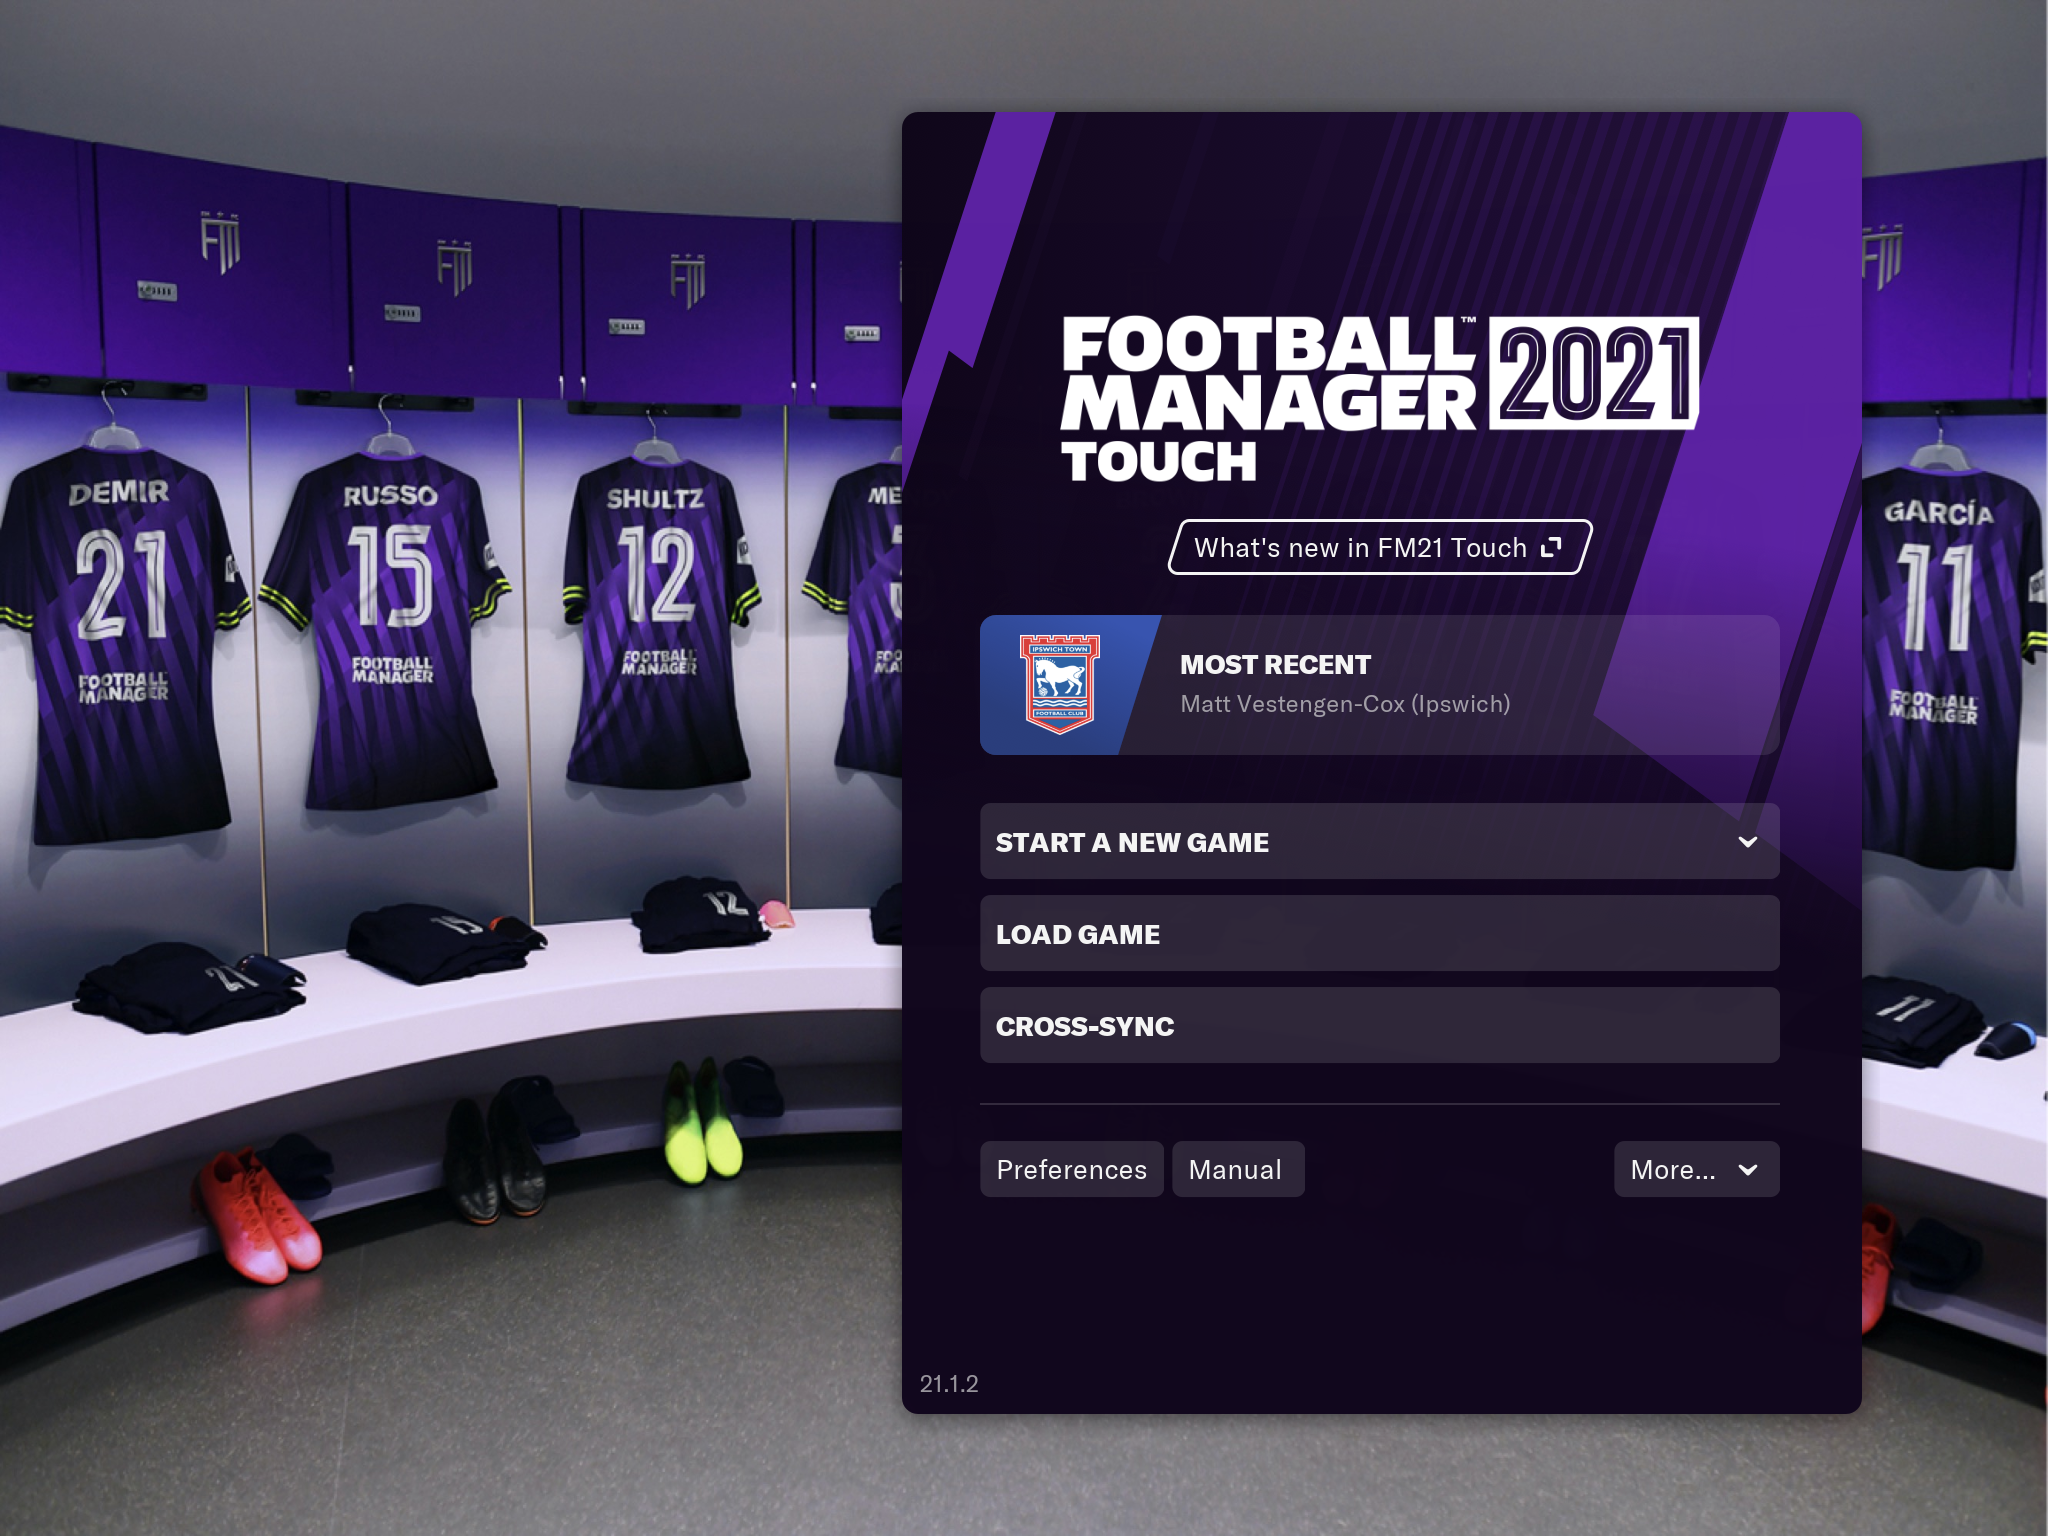 A screenshot of the title screen for FM21 Touch